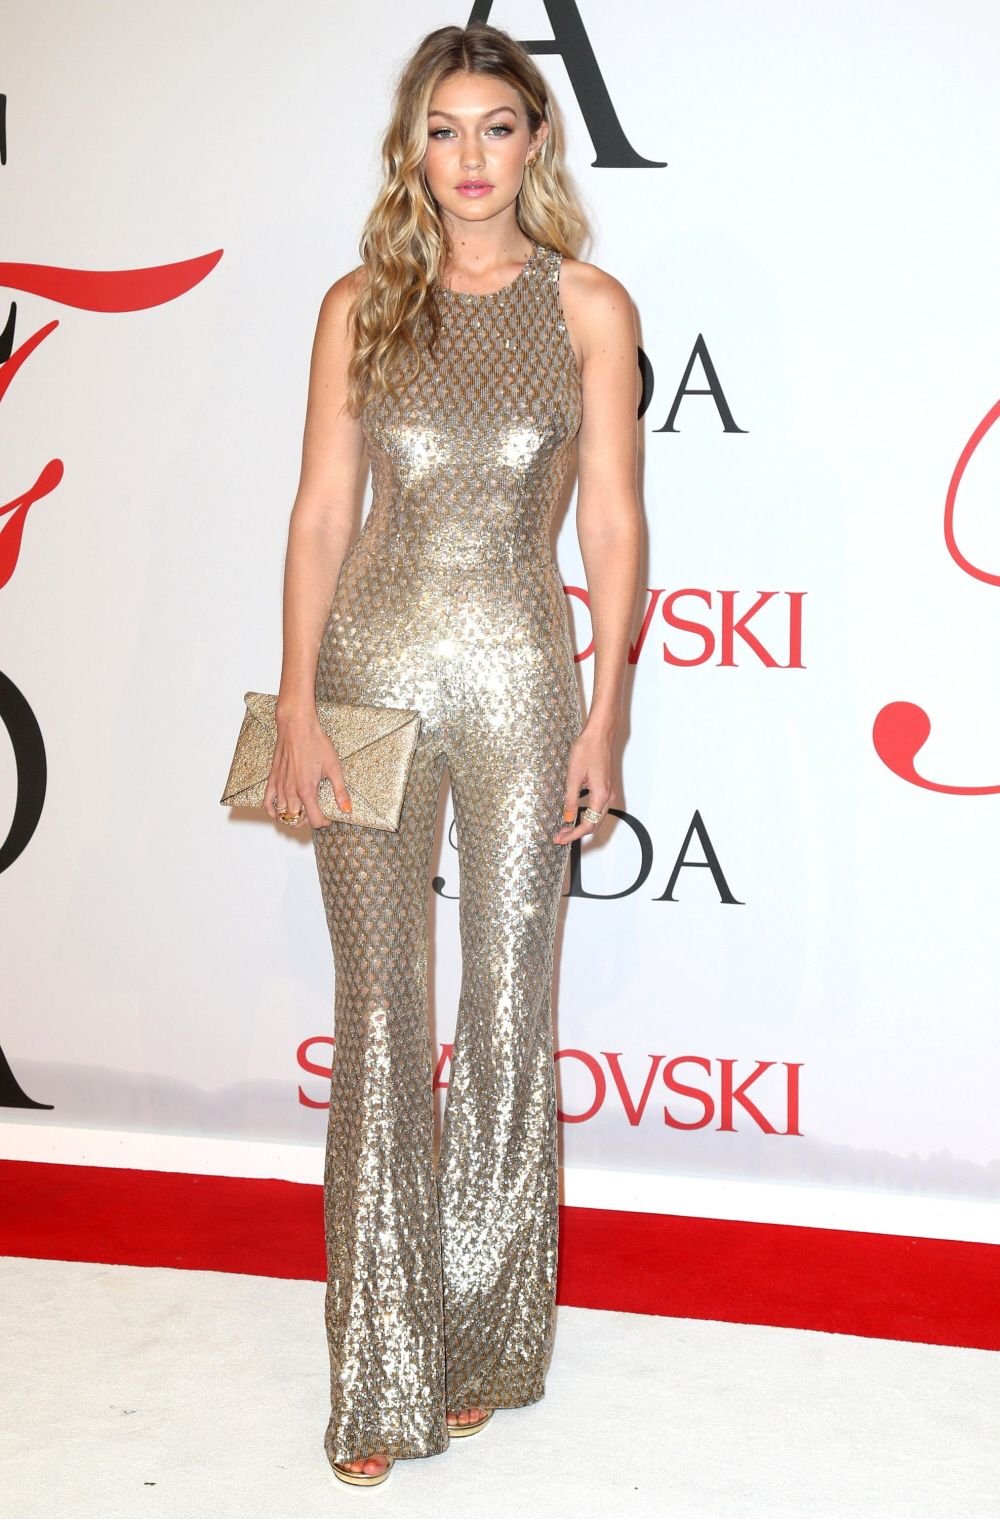 152126c604c Gigi Hadid in gold Michael Kors at the CFDAs  1970s glam or dated fug